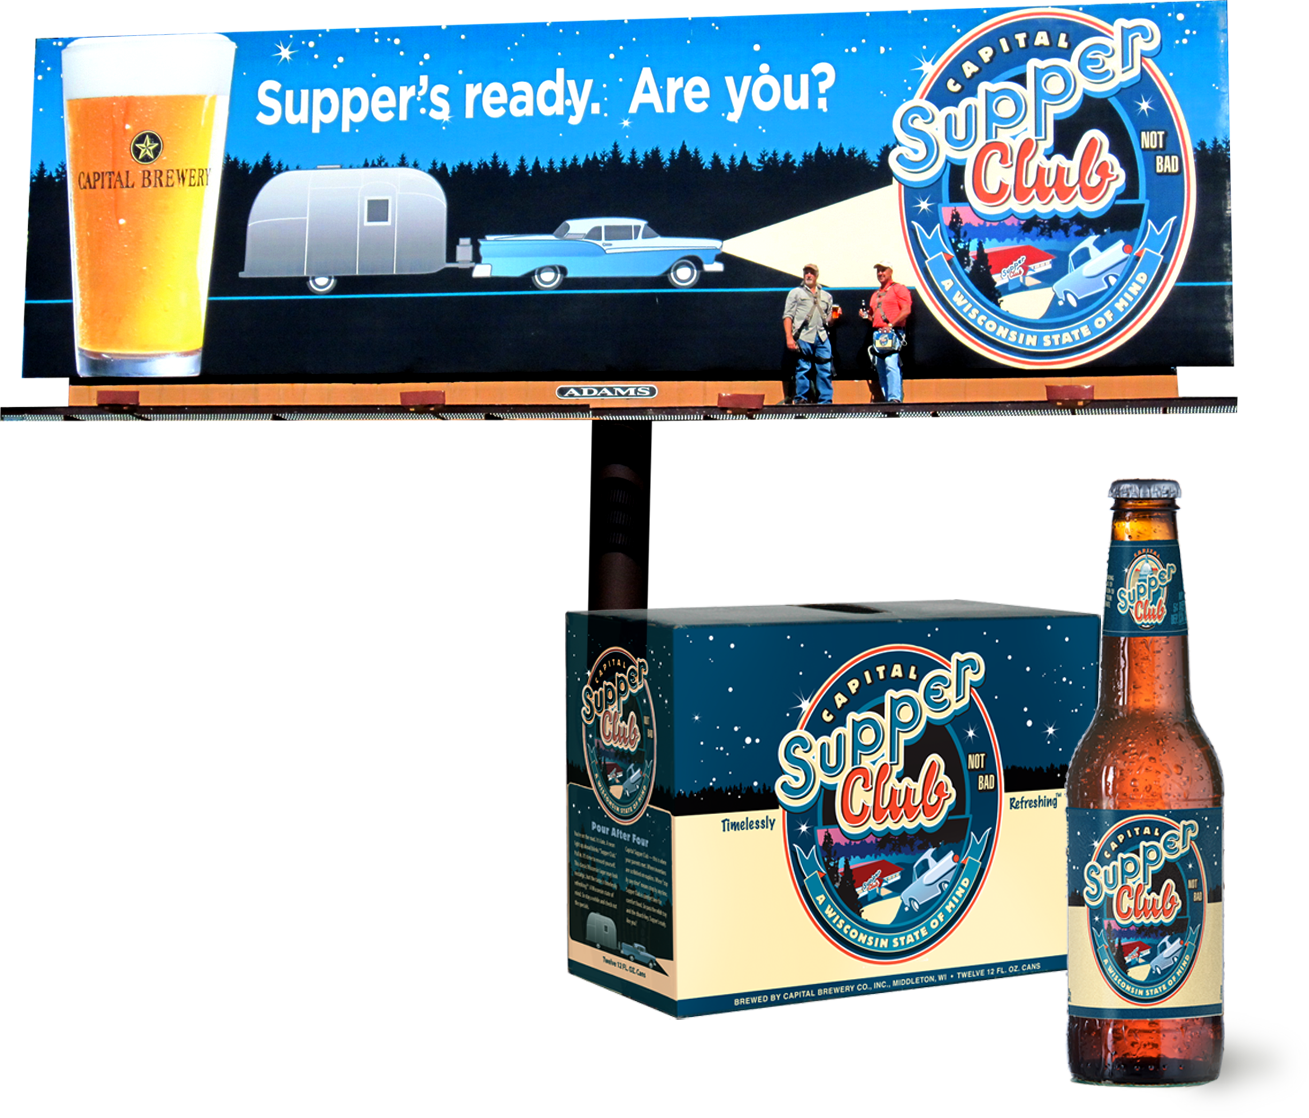 Capital Brewery billboard, Supper Club 12-pack and single bottle